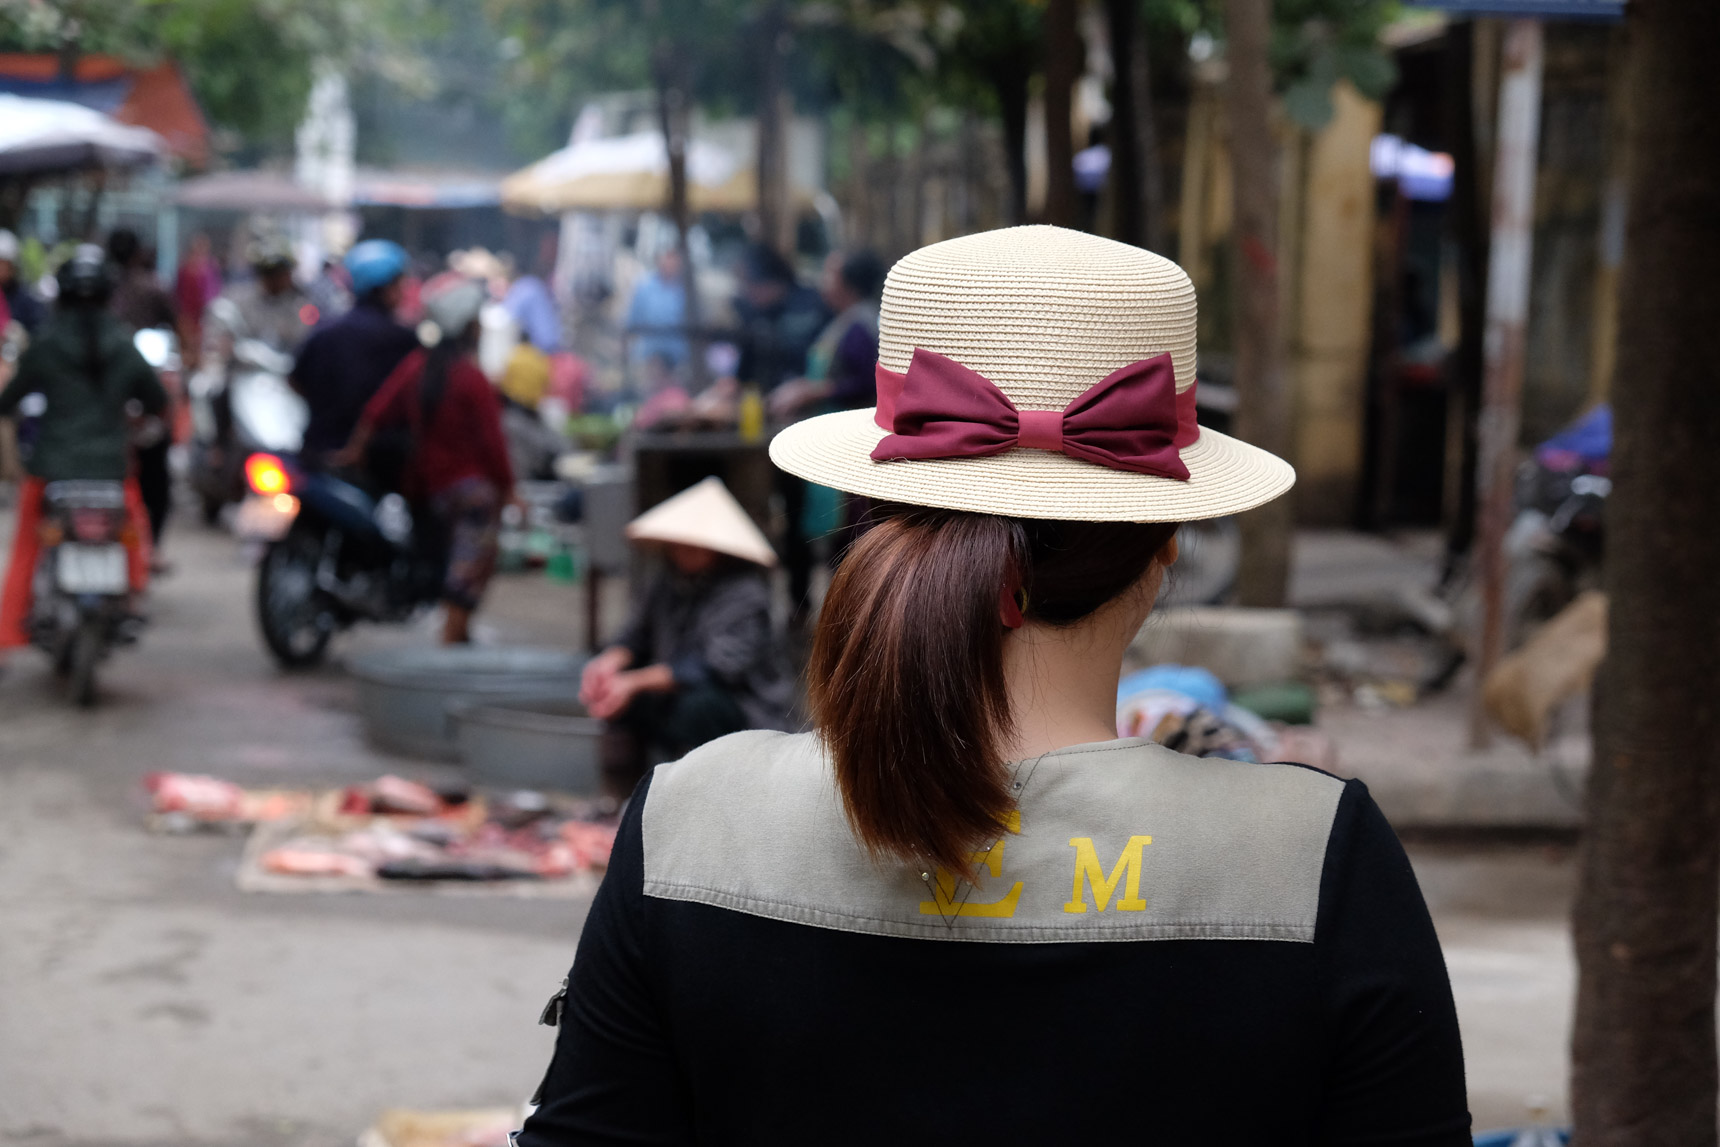 Street Fashion, Le Duan